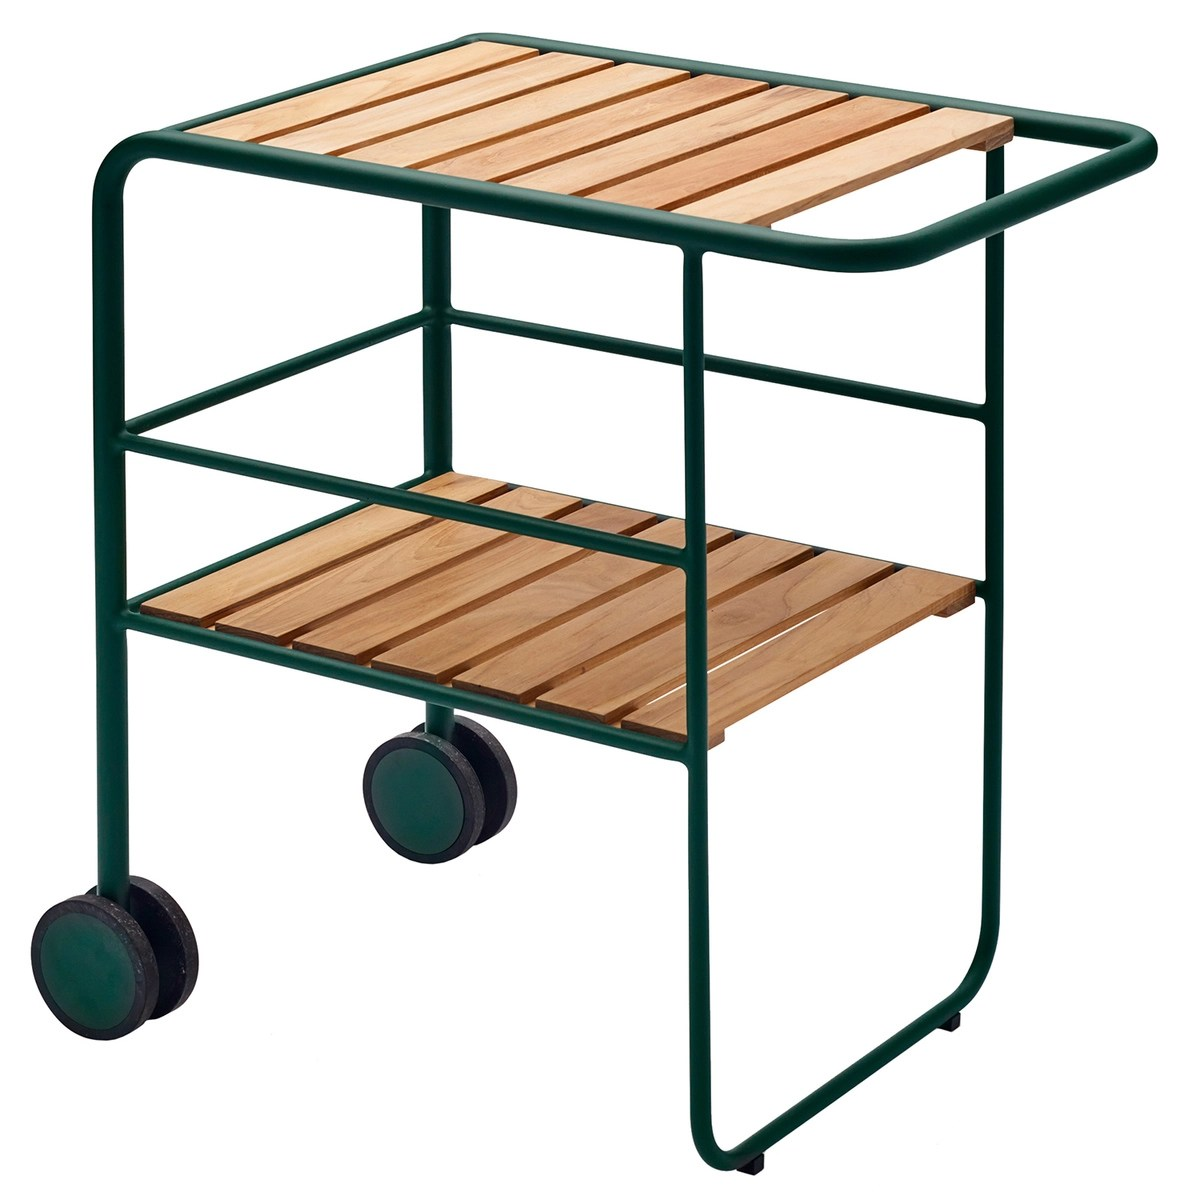 A Frame Trolley Fuori Serving Trolley Green Teak